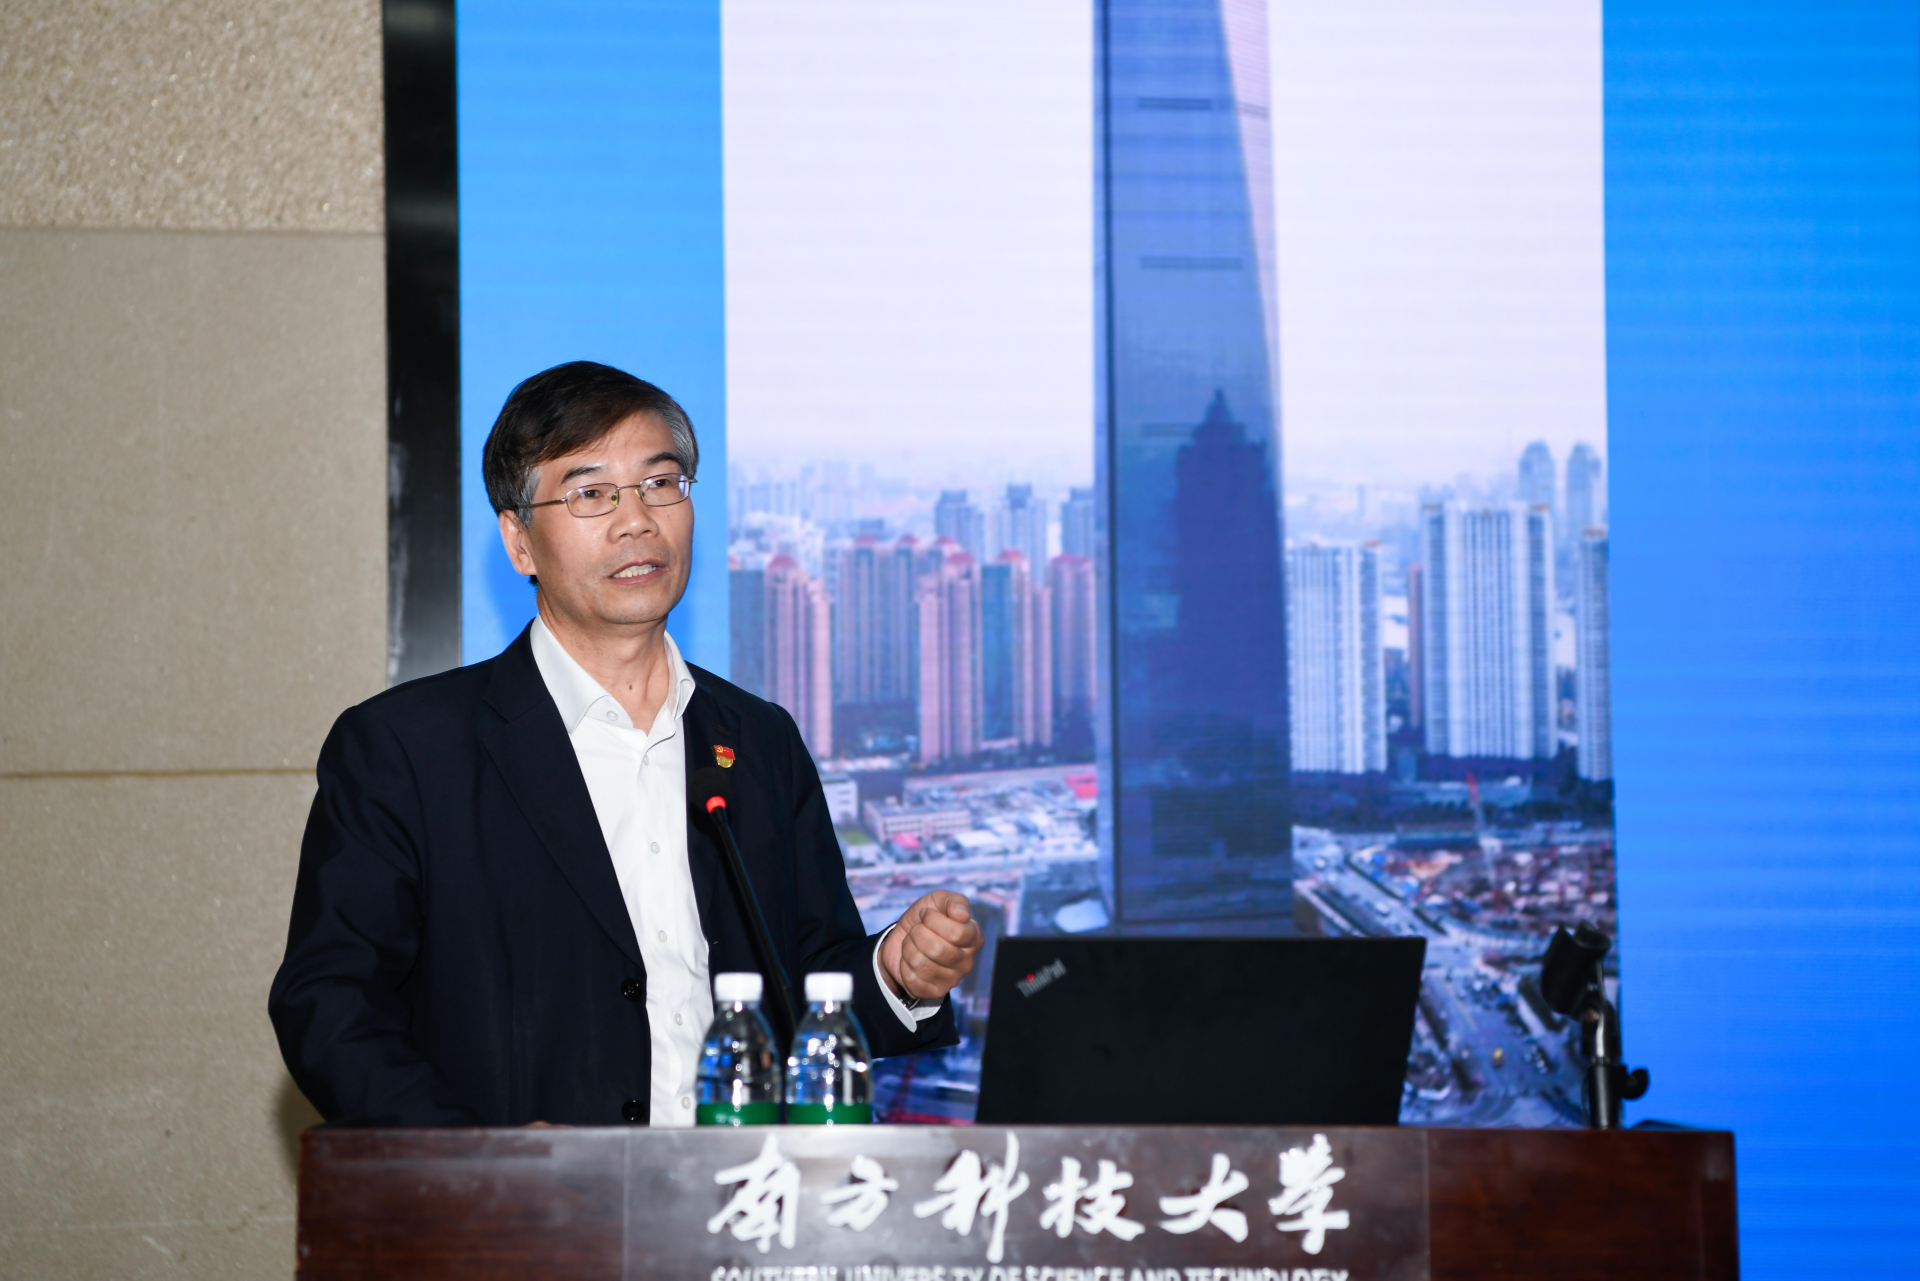 Jianxin LU visits SUSTech to give lecture on the development of Shenzhen